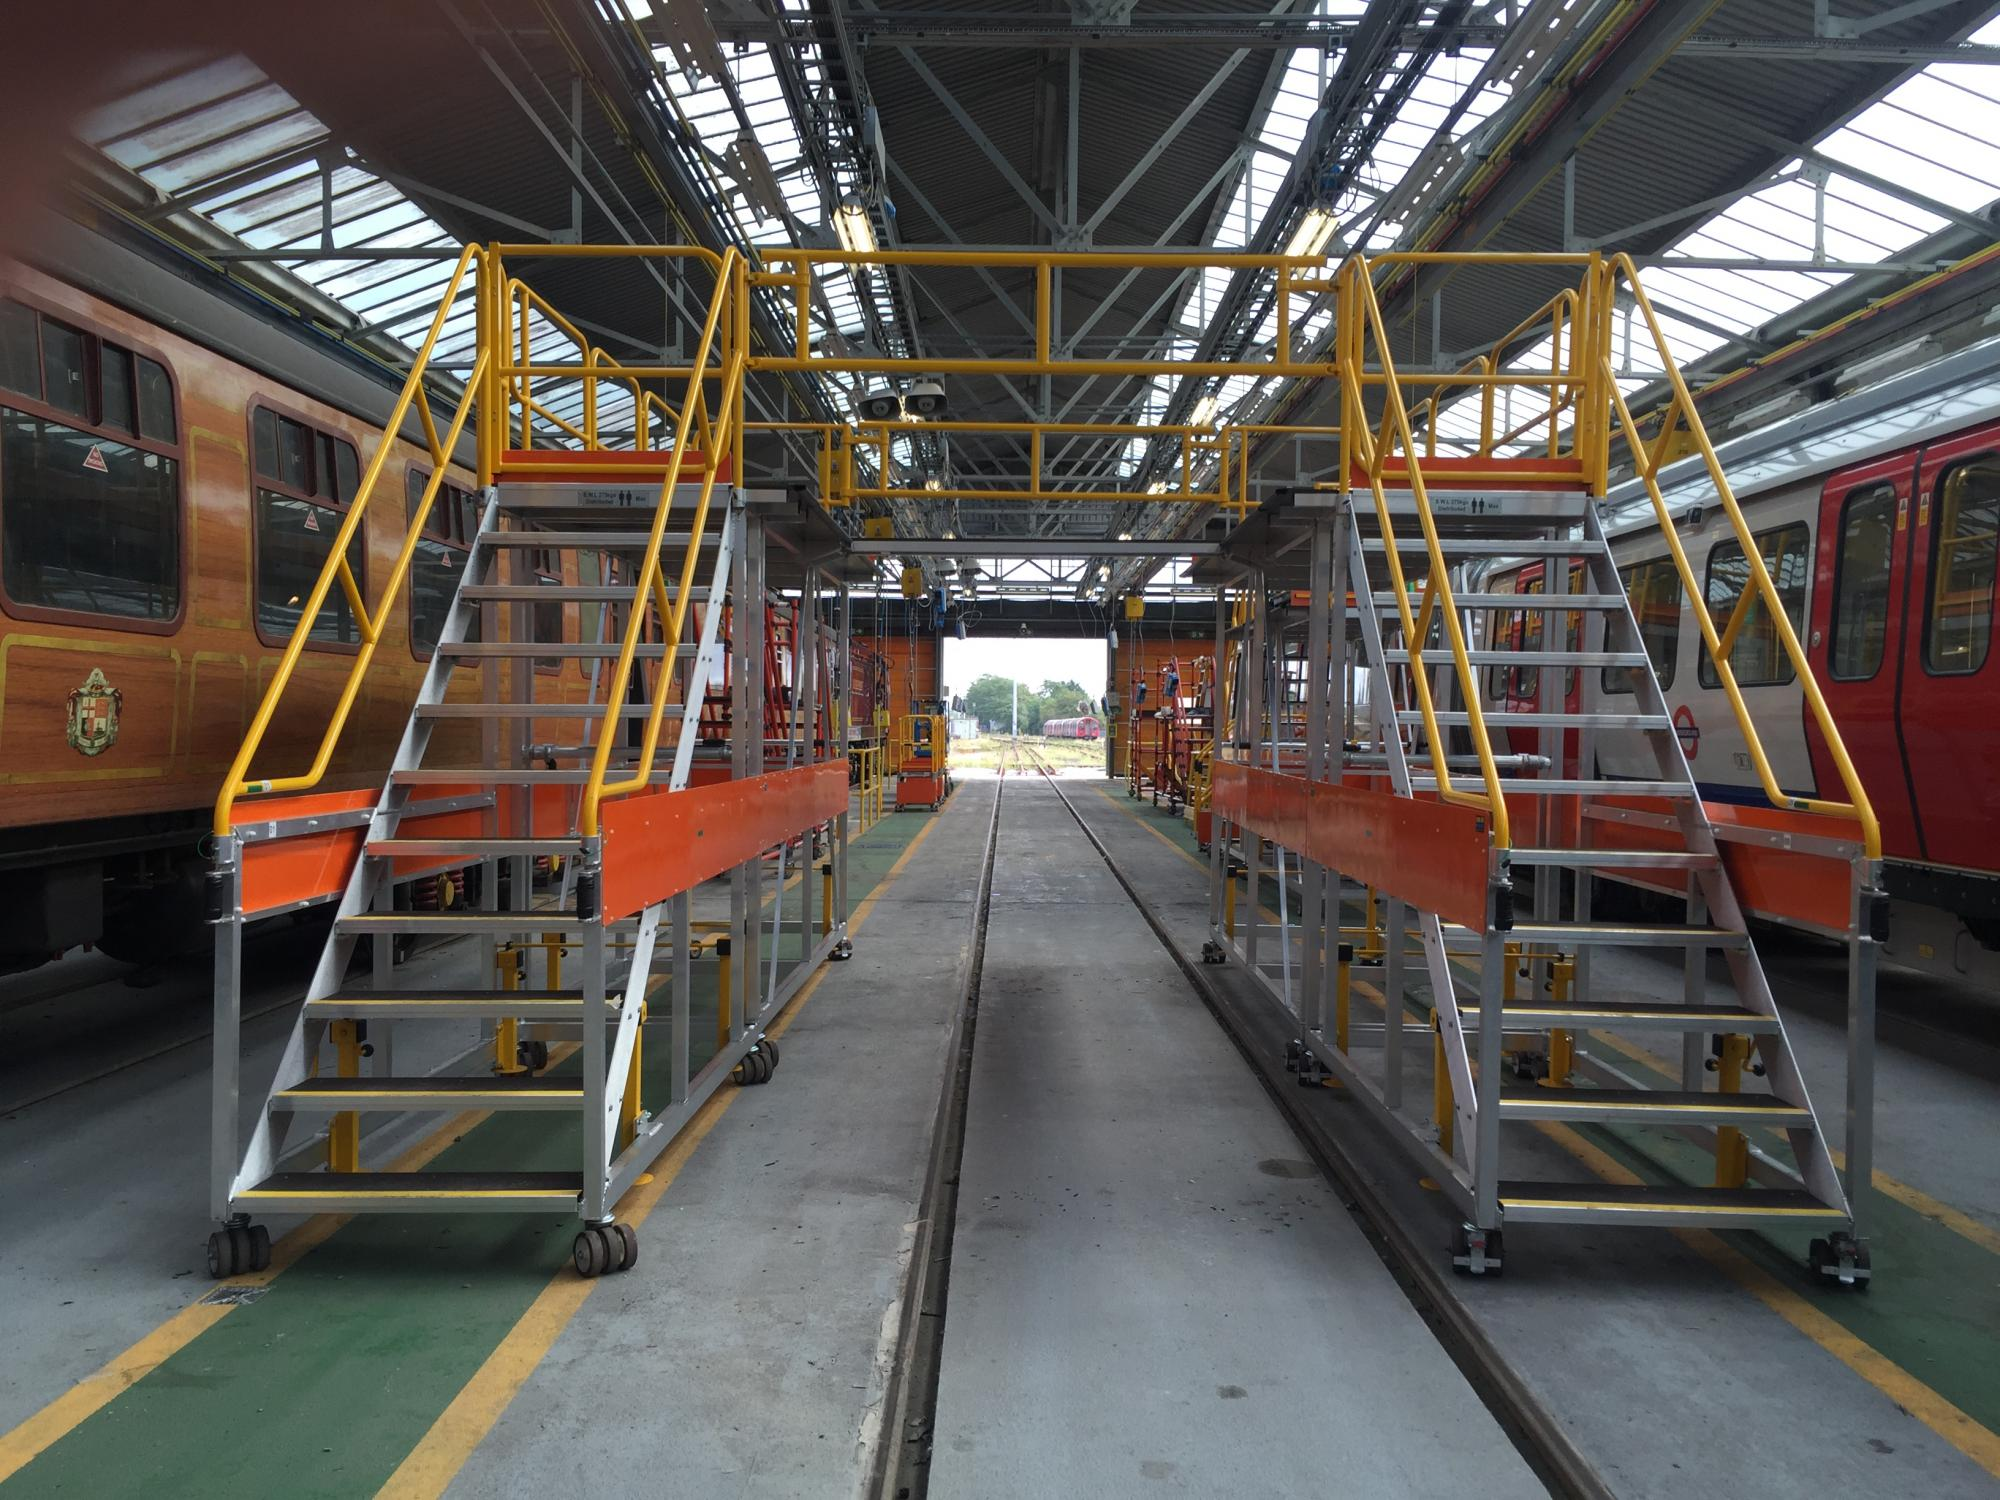 Bespoke Train Roof Access Platforms Working At Height